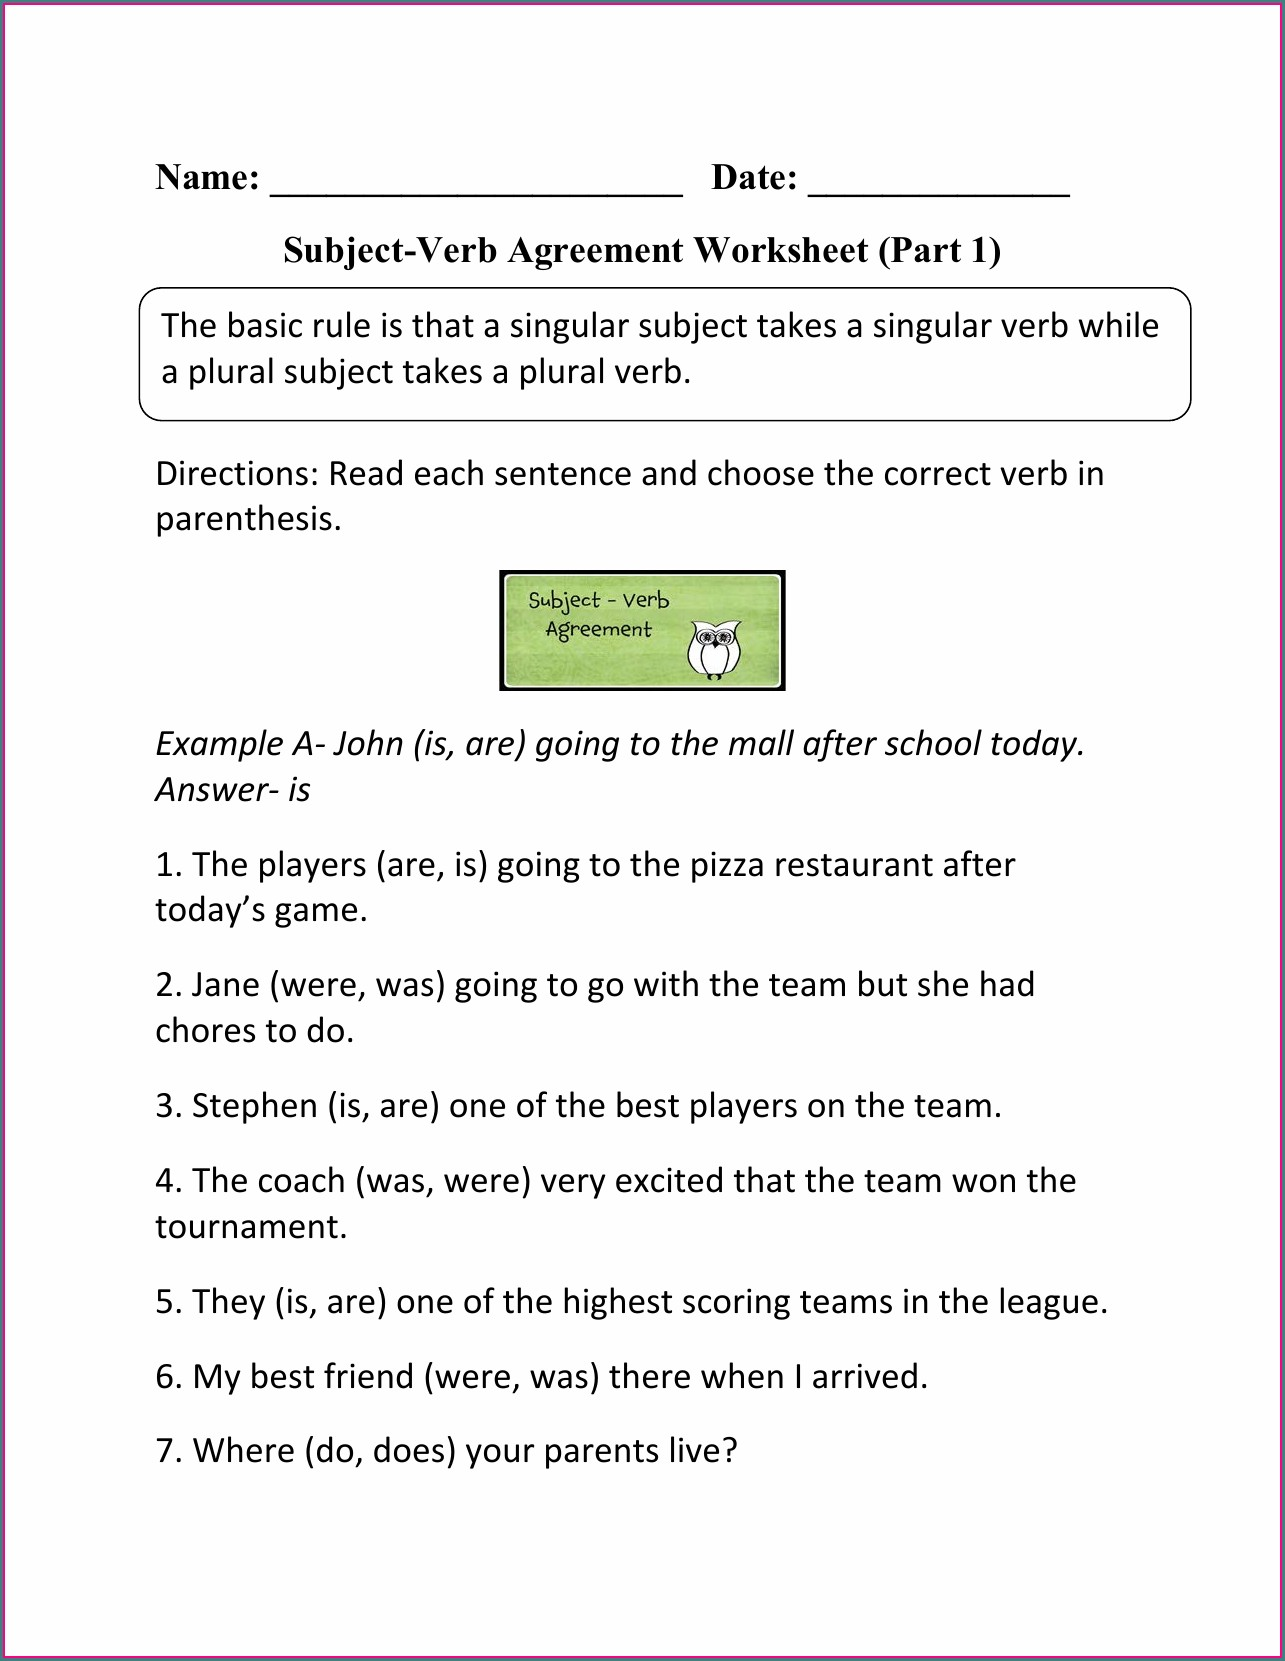 Subject Verb Agreement Worksheet For Grade 2